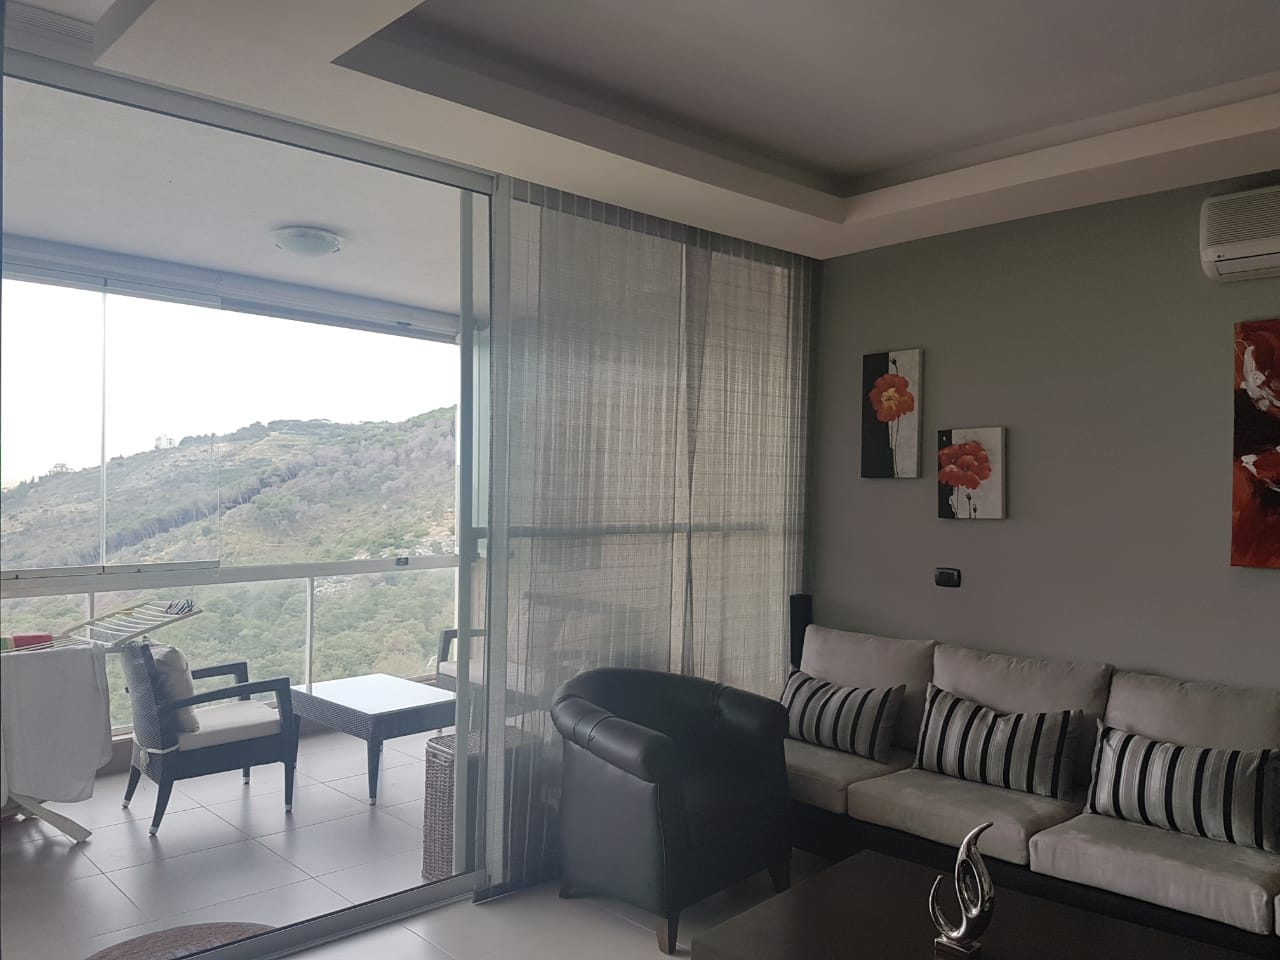 A beautiful luxurious chalet for sale in Jeita country club, buy sell chalet and properties in Jeita, Real estate in Jeita